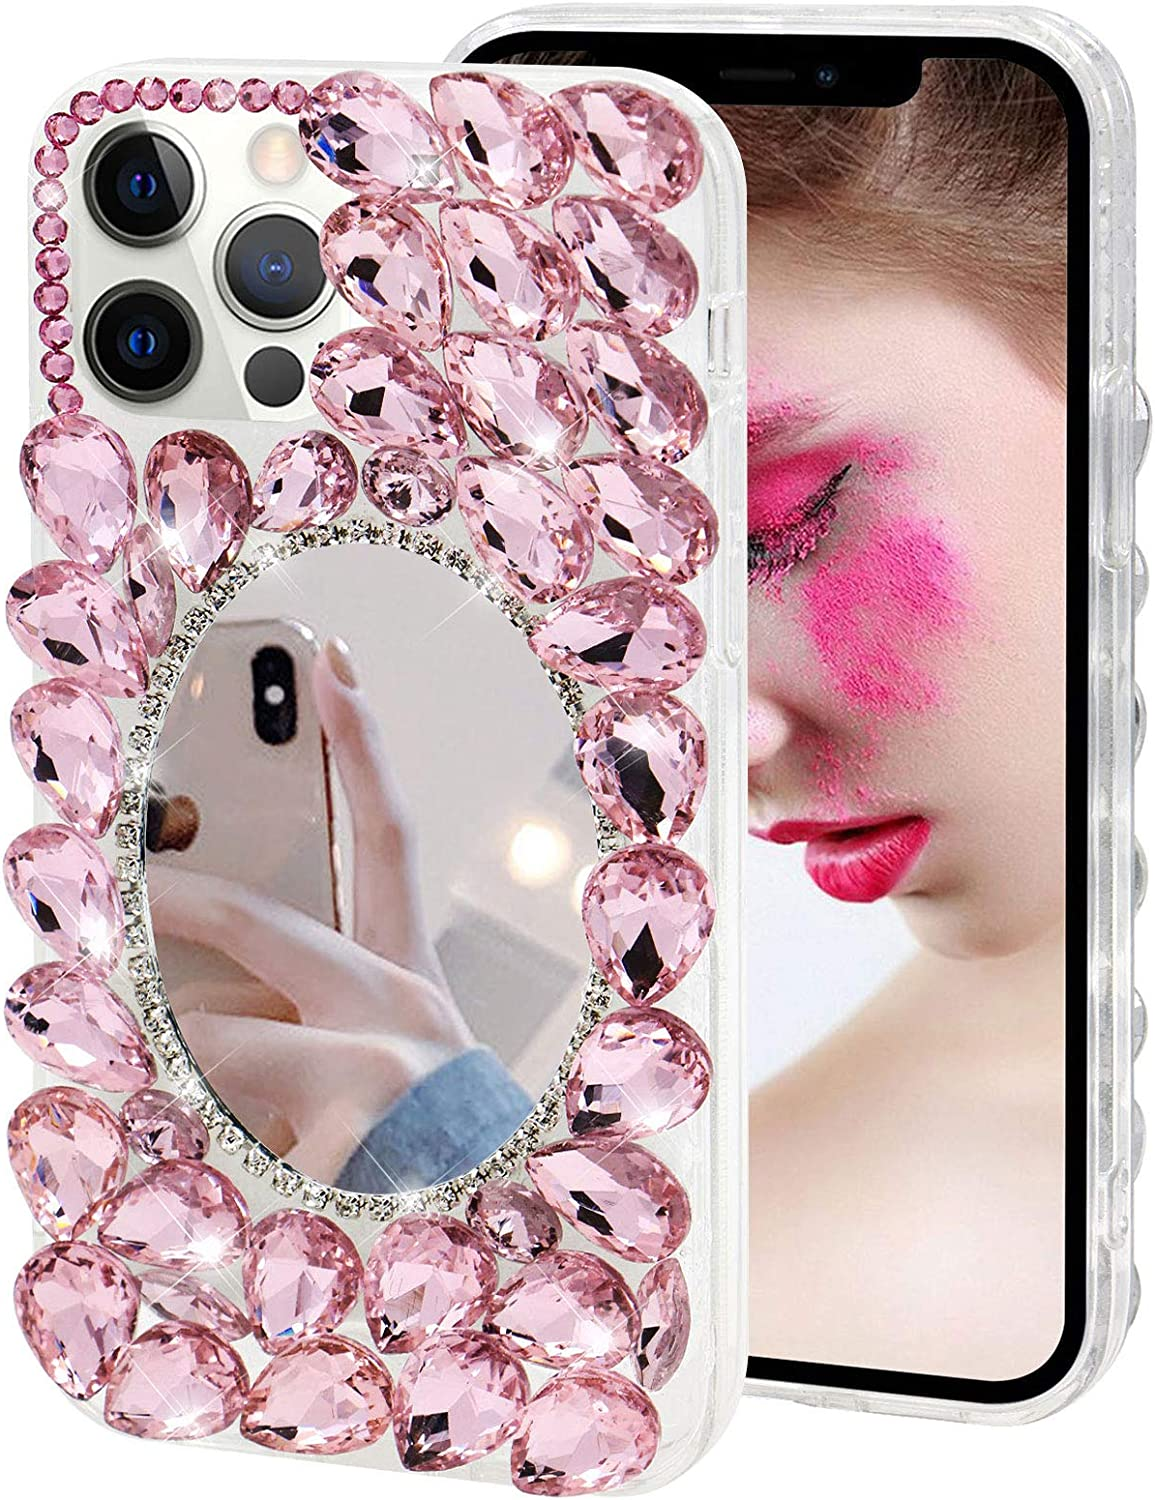 Compatible Translated with iPhone 11 Pro Mirror Case Makeup Max Tampa Mall Rhinestone